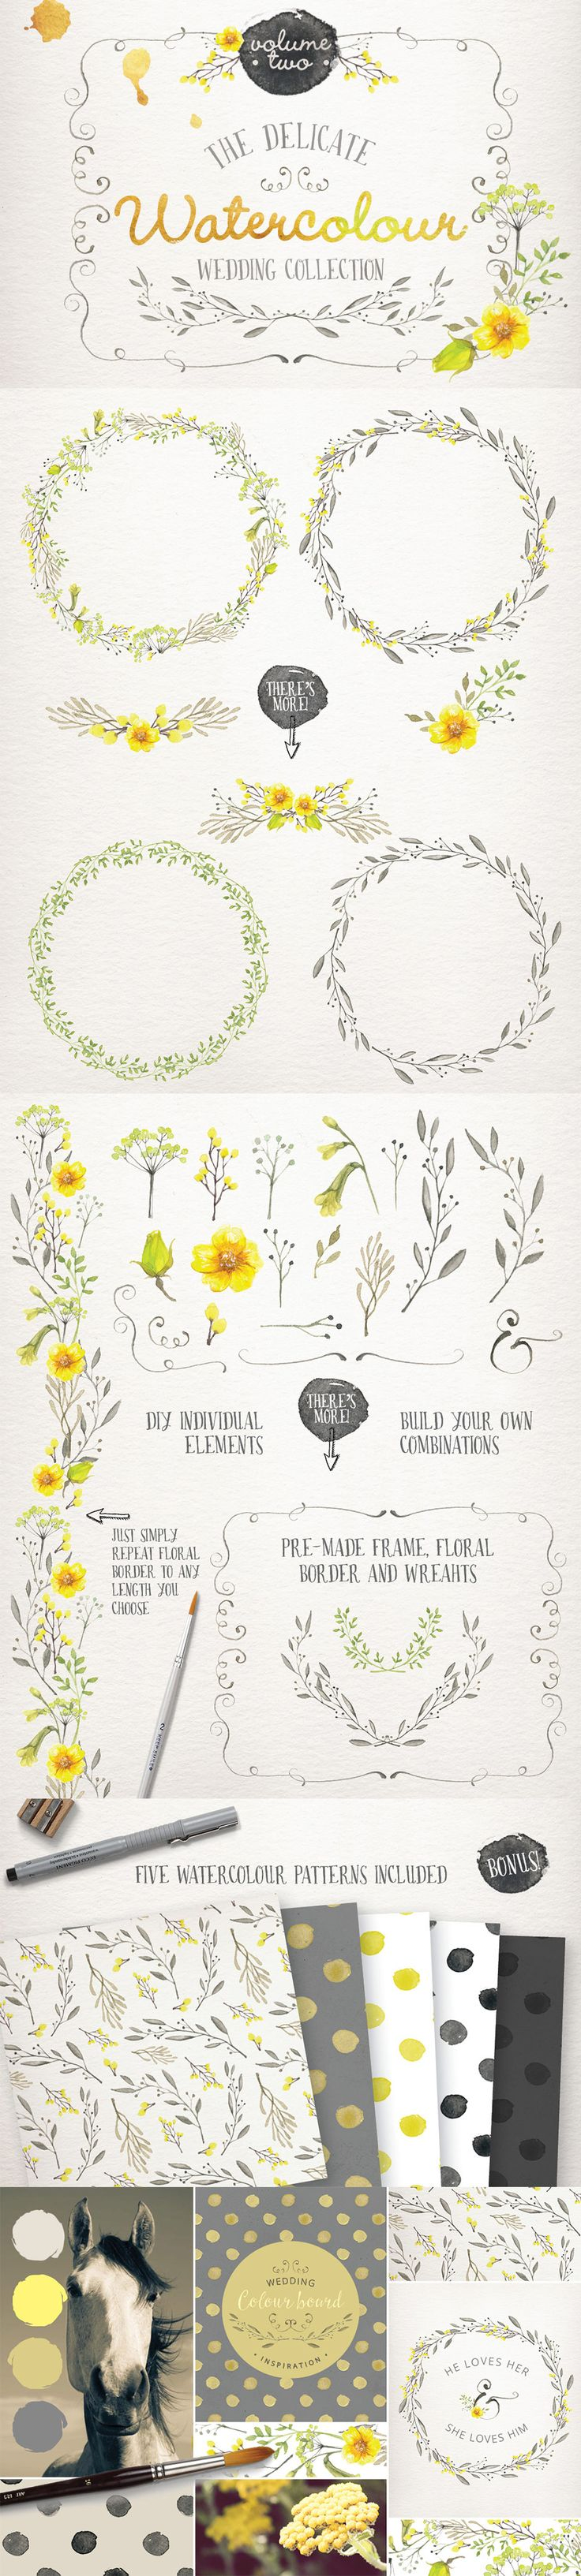 The Essential, Creative Design Arsenal (1000s of Best-Selling Resources) Just $29 - Watercolour Wedding Collection Vol 2